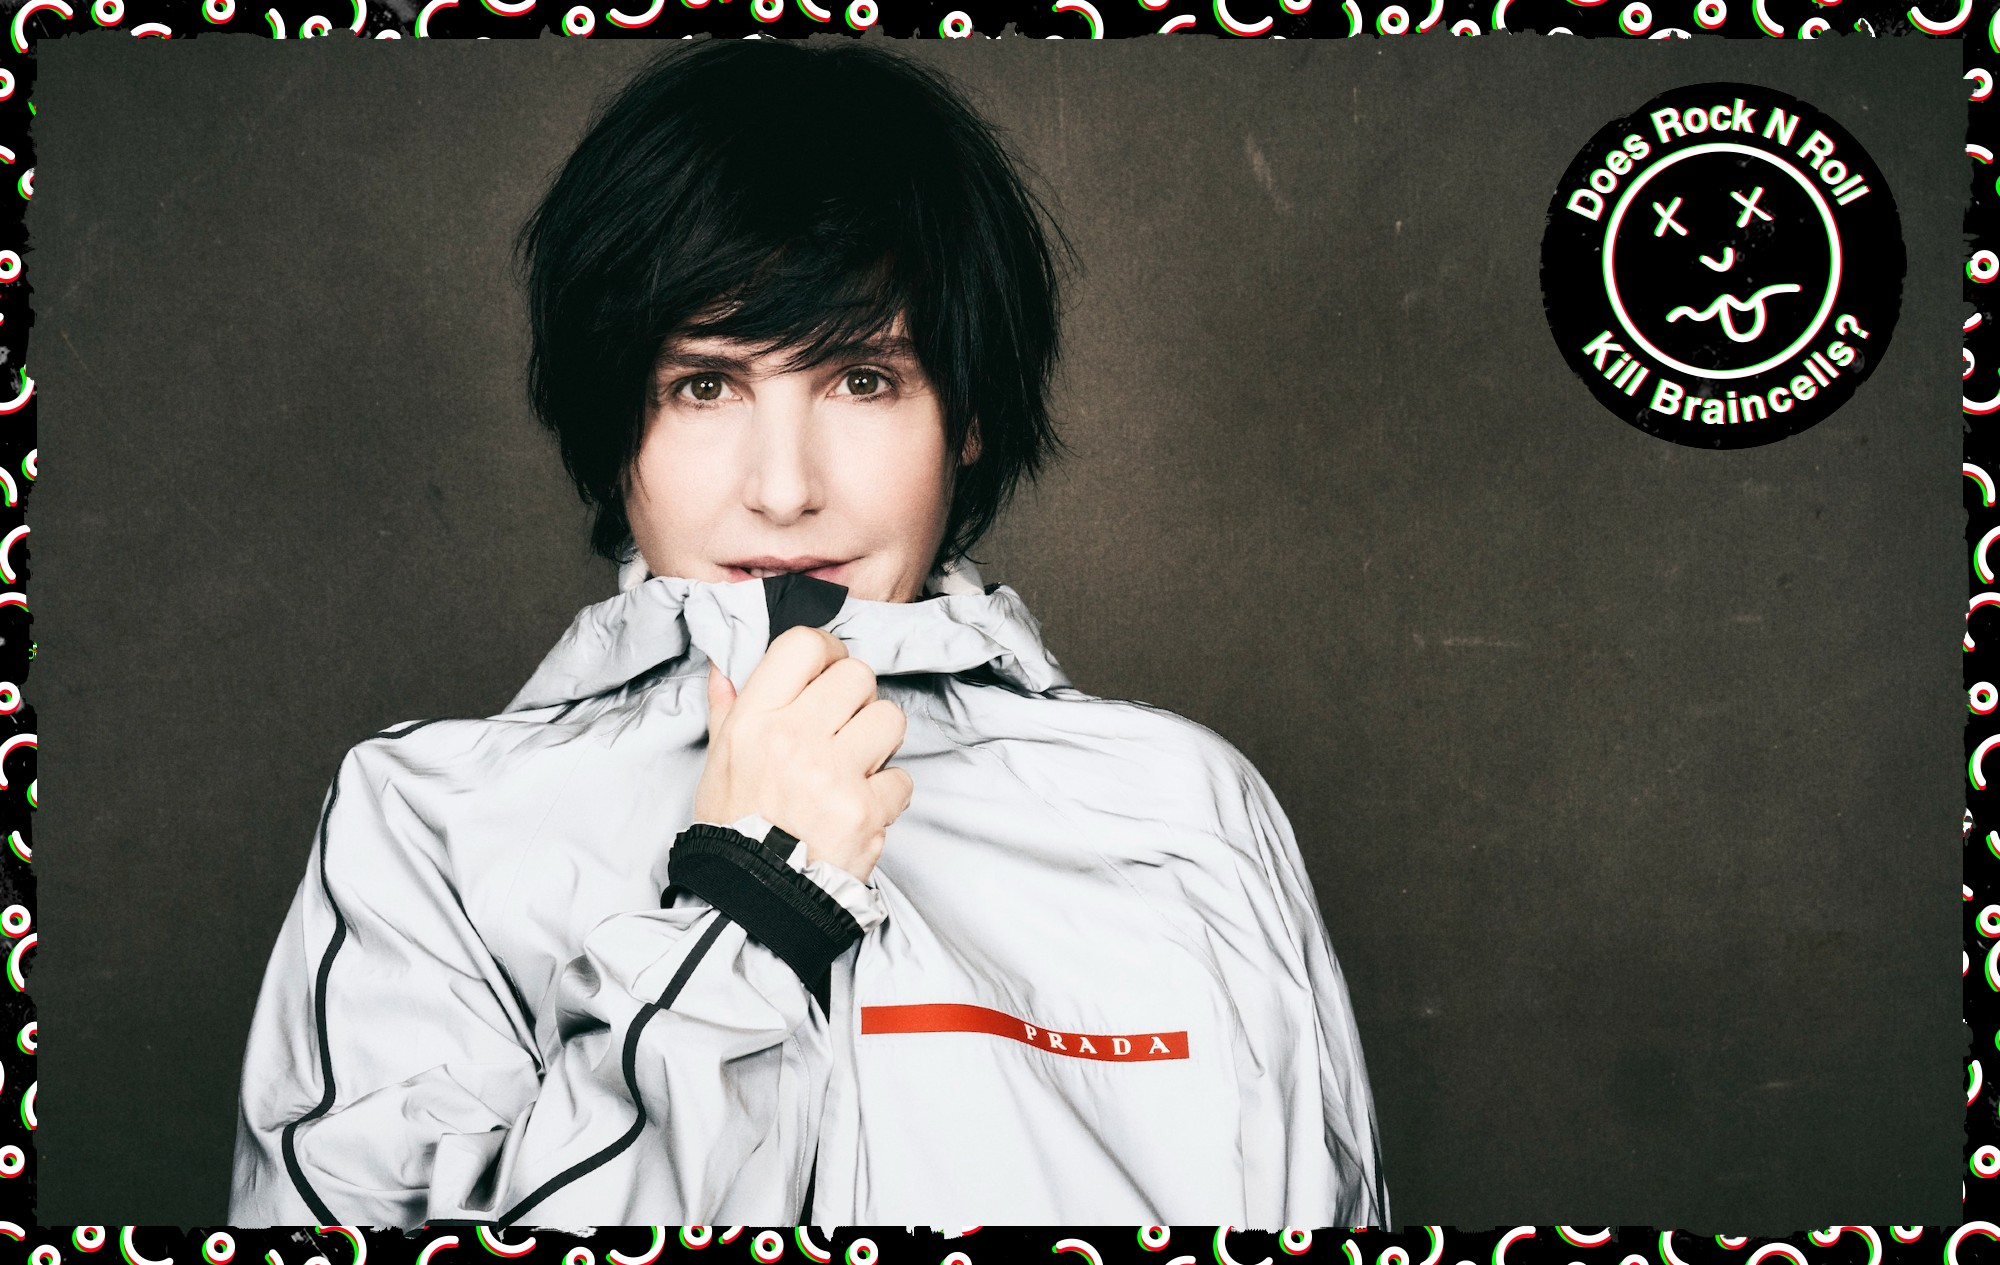 Does Rock 'N' Roll Kill Braincells?! – Texas' Sharleen Spiteri - NME interview